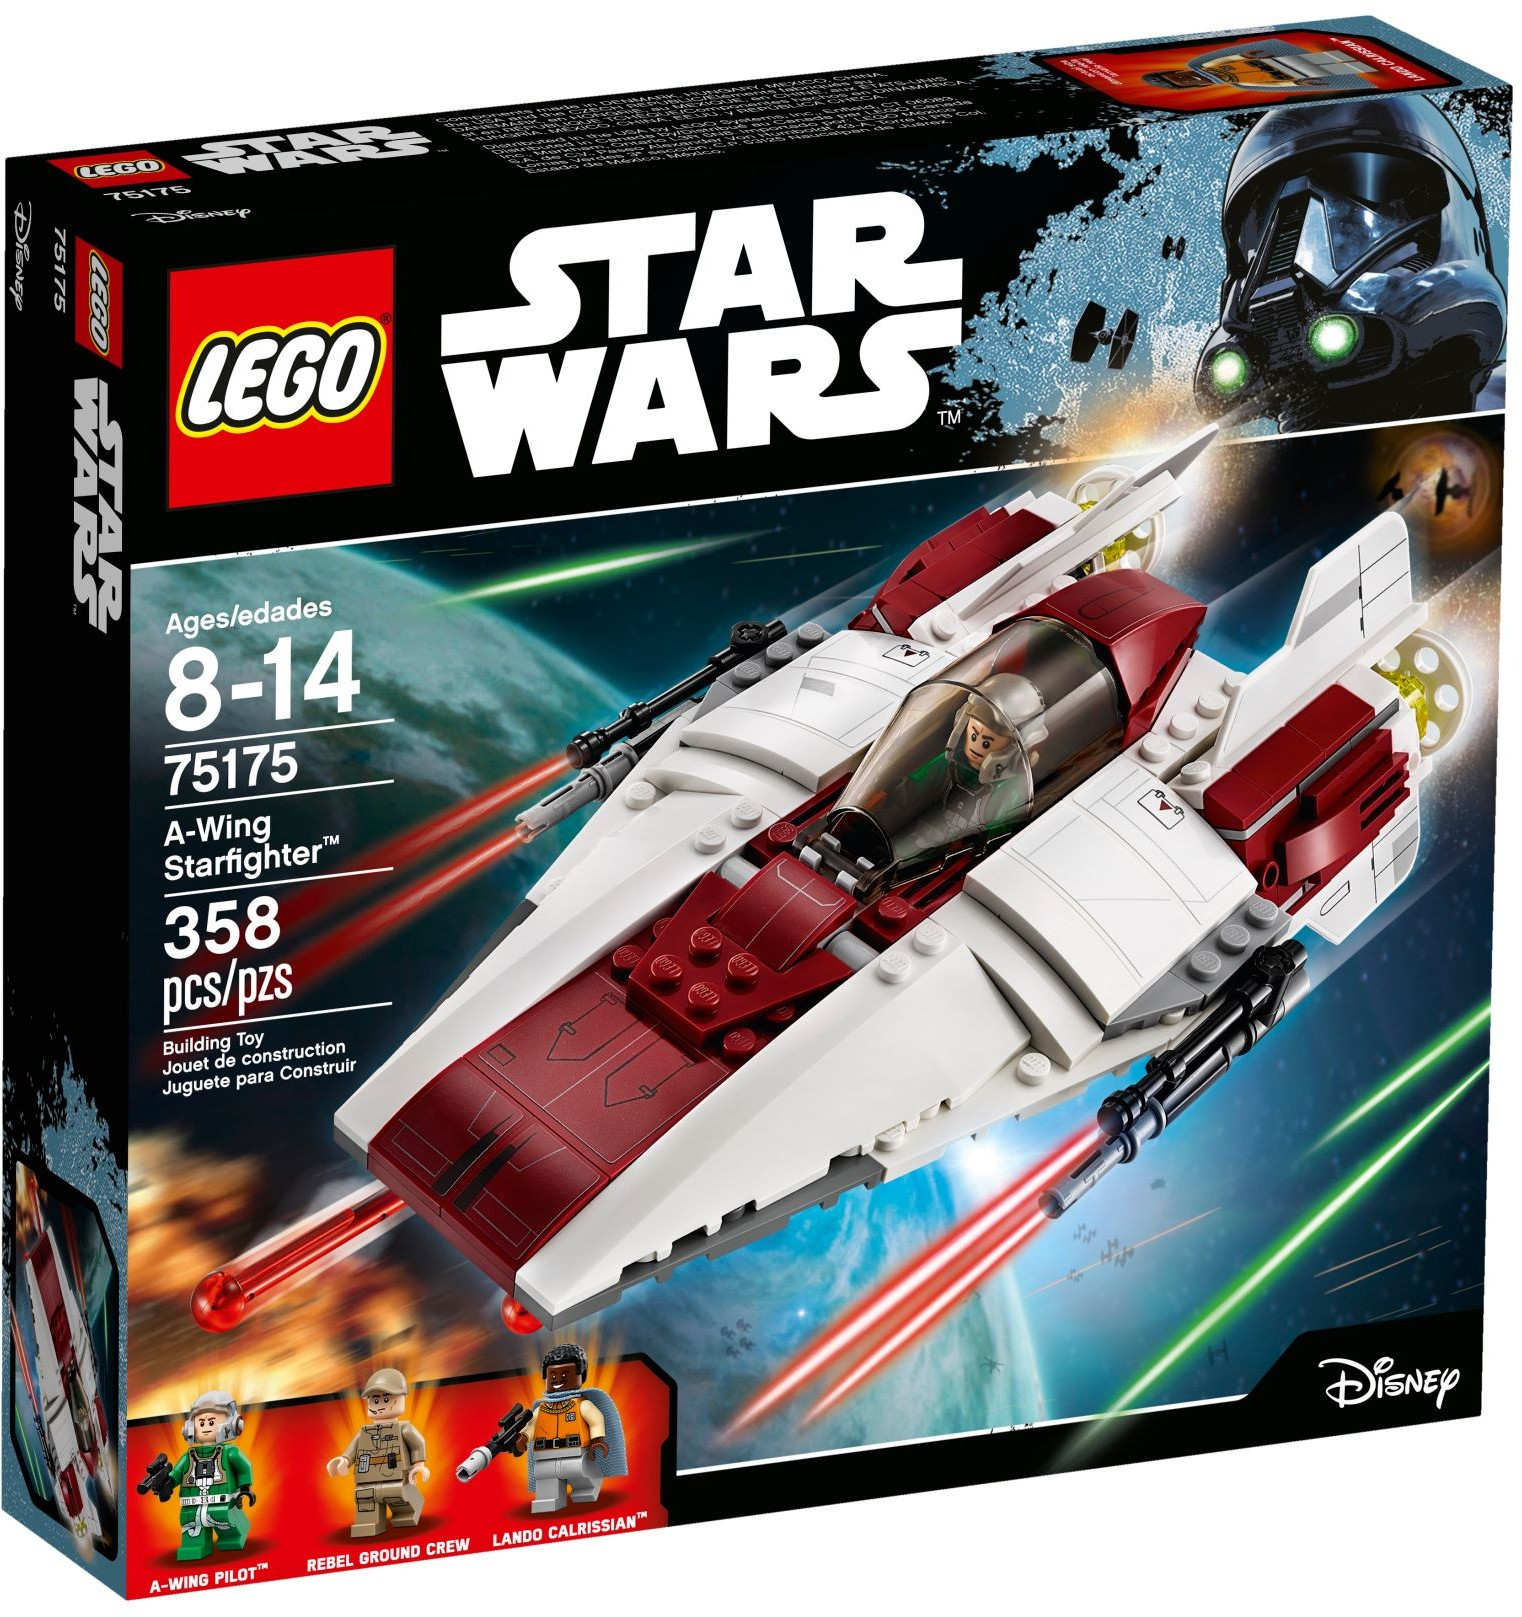 LEGO Star Wars Sets: 75175 A-Wing Starfighter NEW